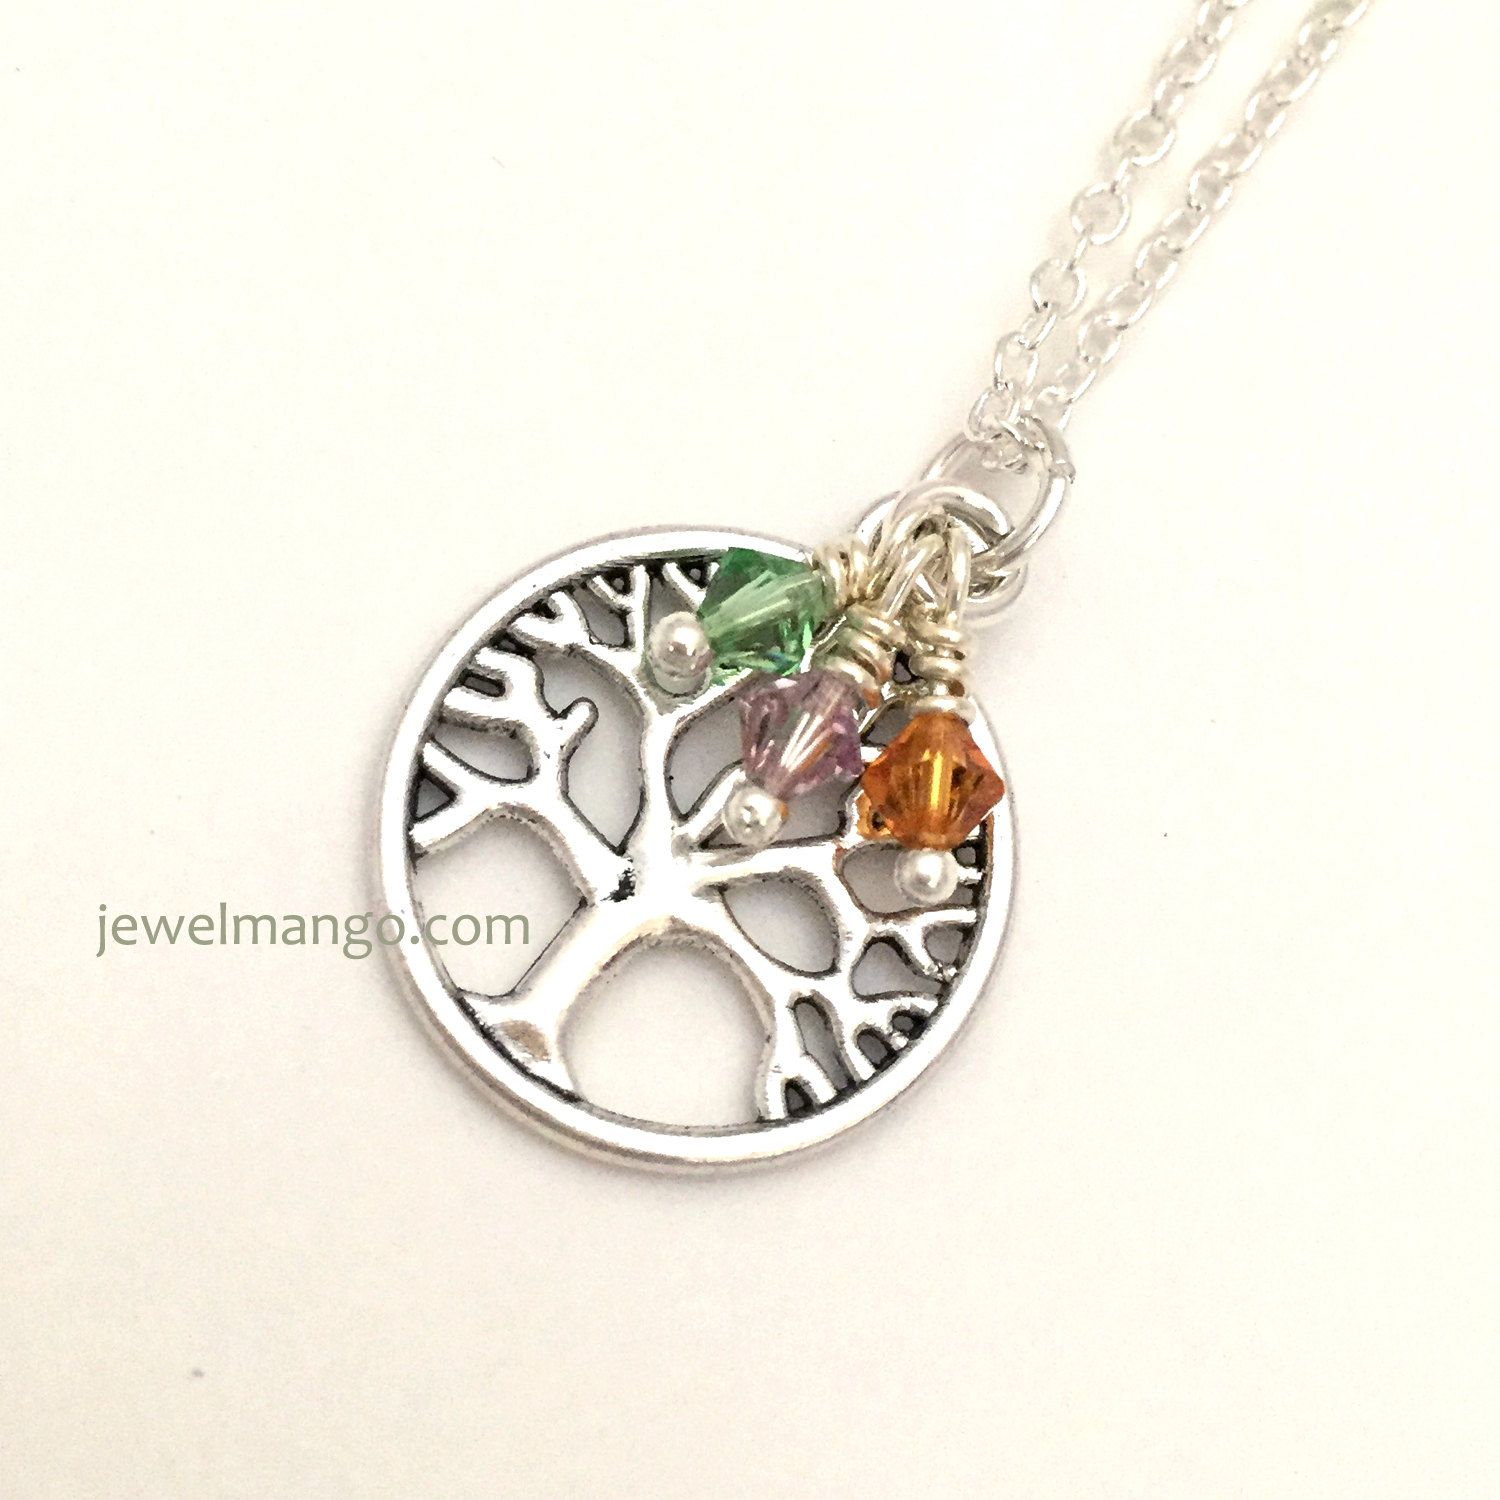 mom gift pin pendant stone day gifts mother family birth necklace personalized tree mothers swarovski